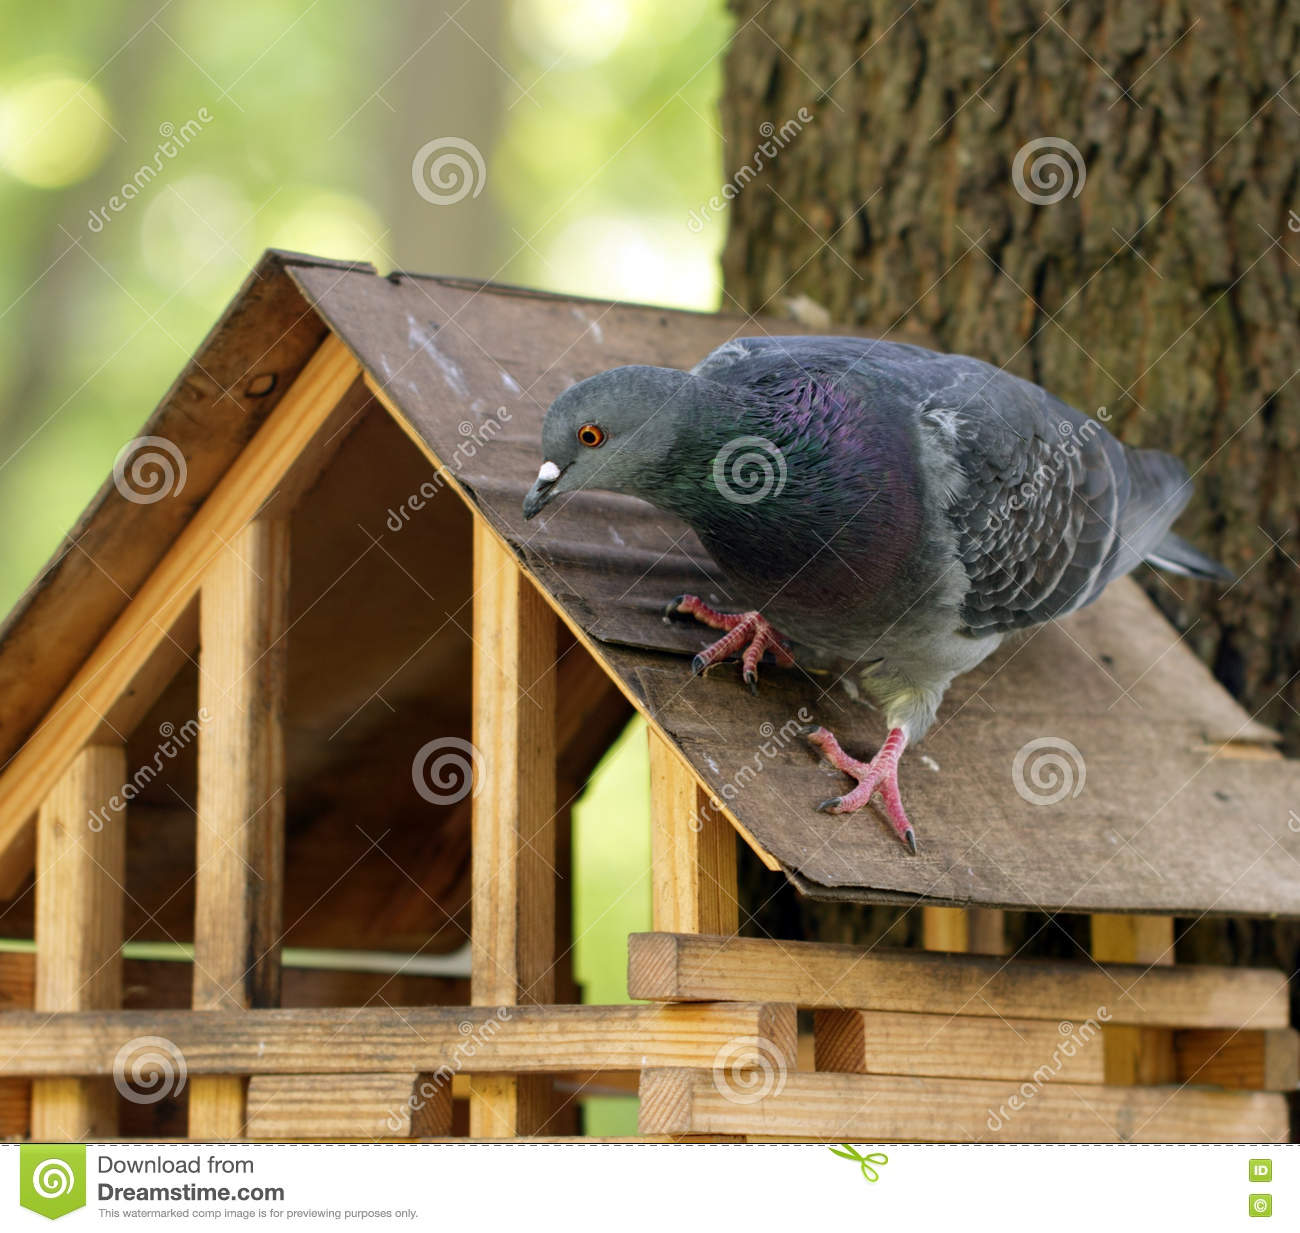 Rock Pigeon Sitting On Wooden Feeder Stock Photo Image Of Walking